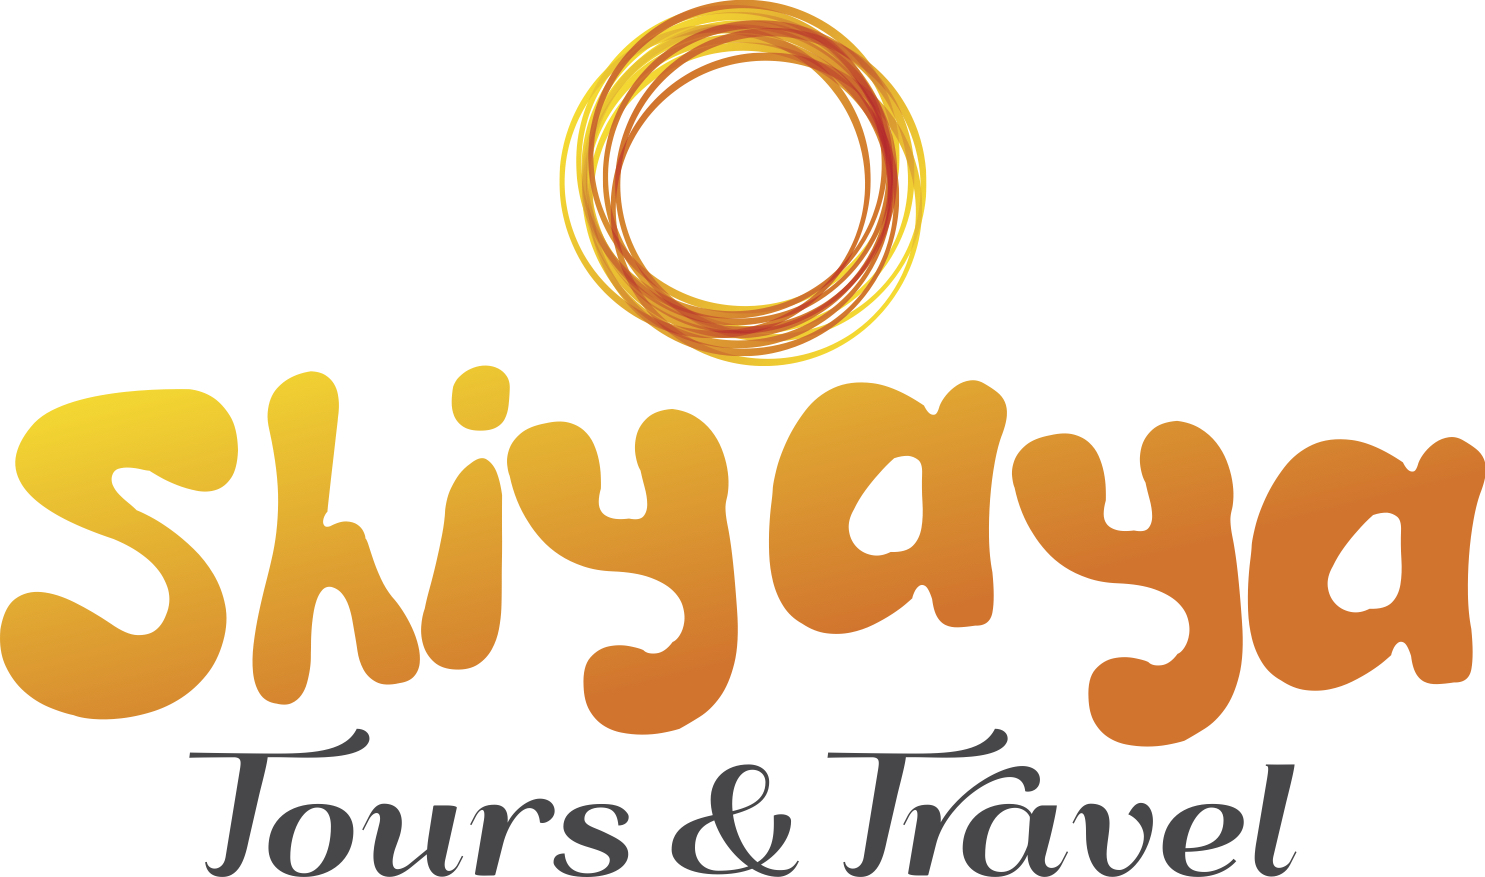 Shiyaya Tours & Travel